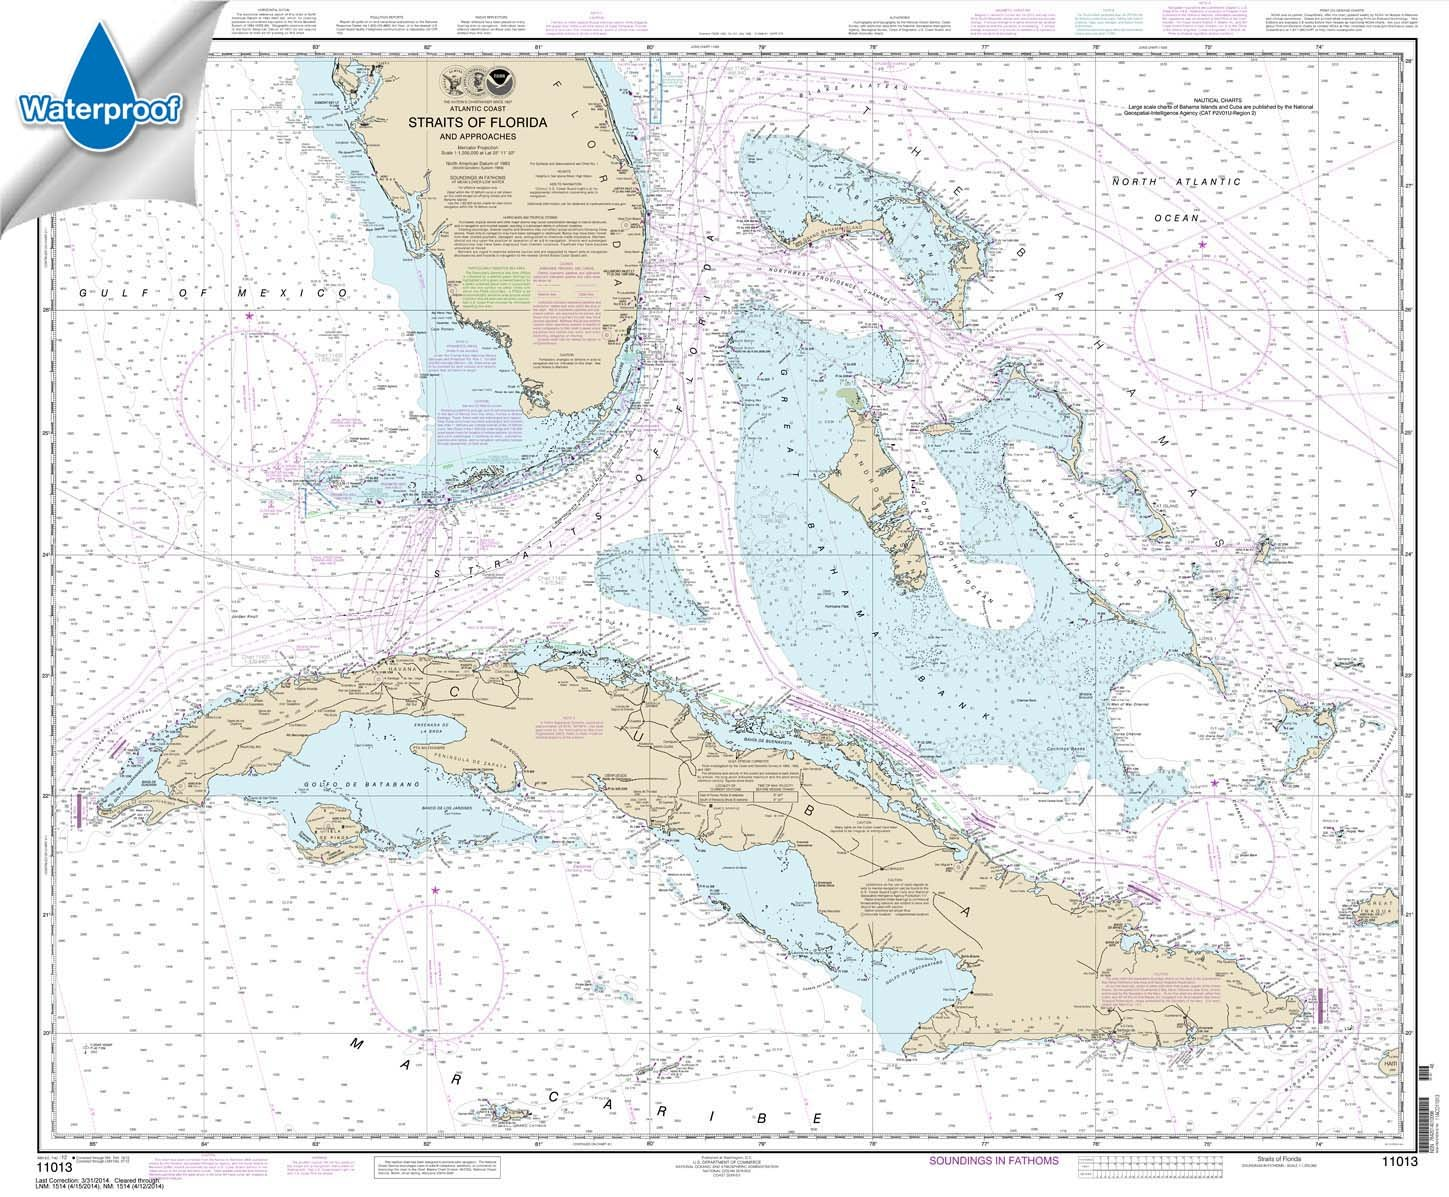 Paradise Cay Publications NOAA Chart 11013: Straits of Florida and Approaches, 35.5 X 43, WATERPROOF by Paradise Cay Publications